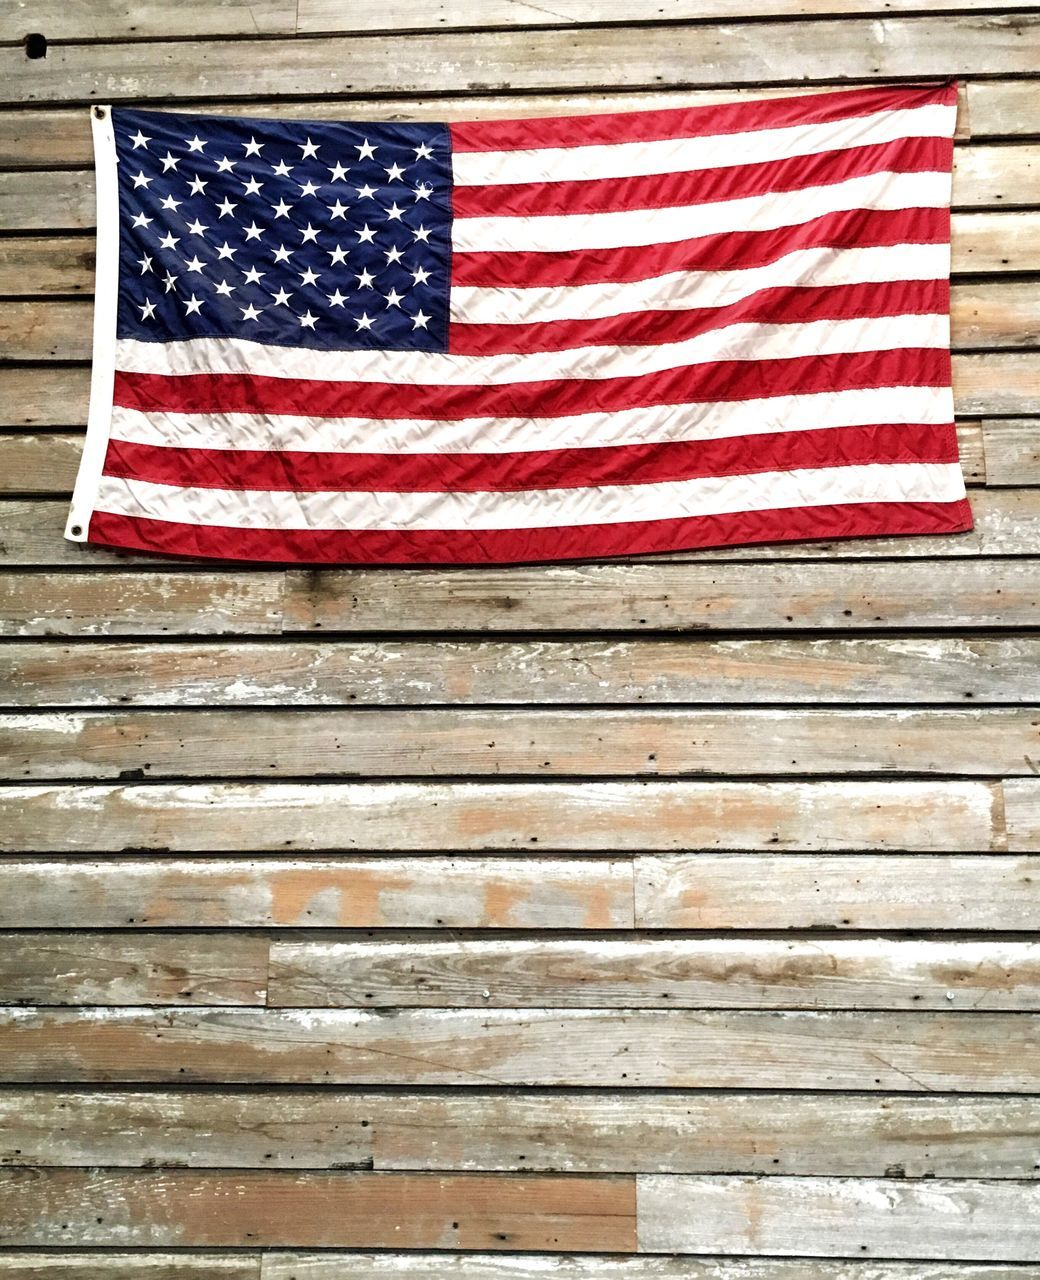 patriotism, flag, cultures, stars and stripes, striped, star shape, freedom, independence, flag pole, no people, outdoors, pride, red, blue, close-up, day